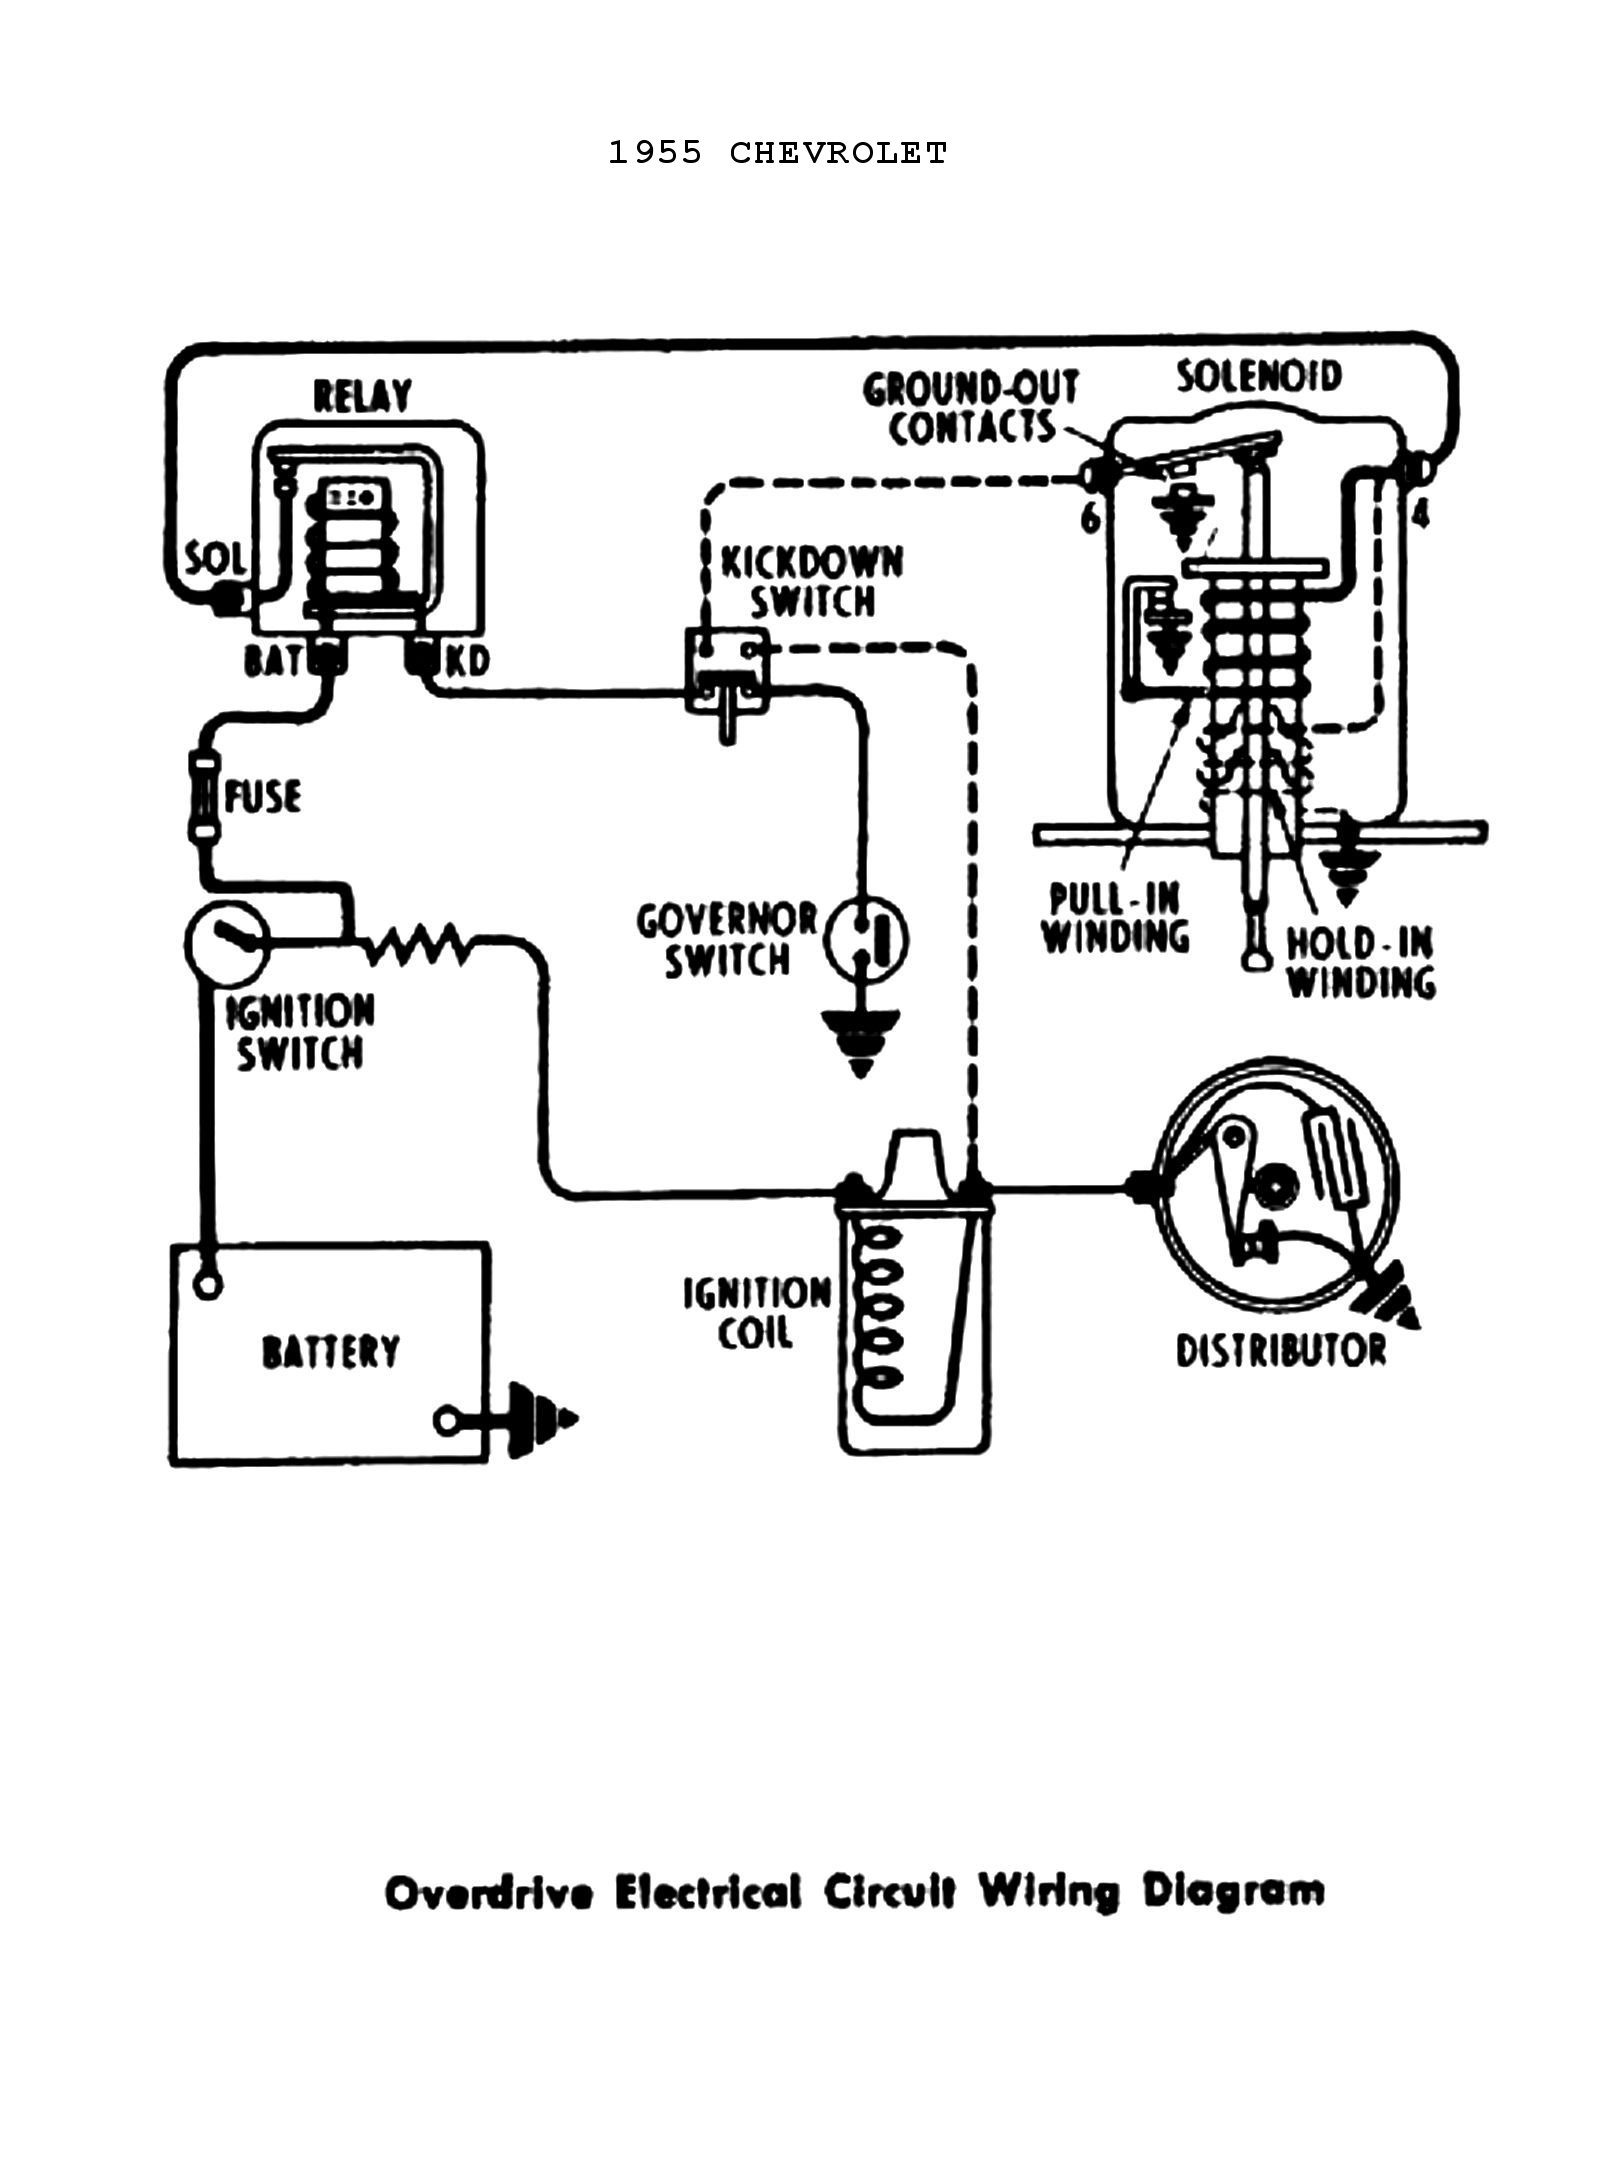 55odtrans1 chevy spark wiring diagram chevy wiring diagrams instruction 1955 chevy wiring diagram at gsmportal.co